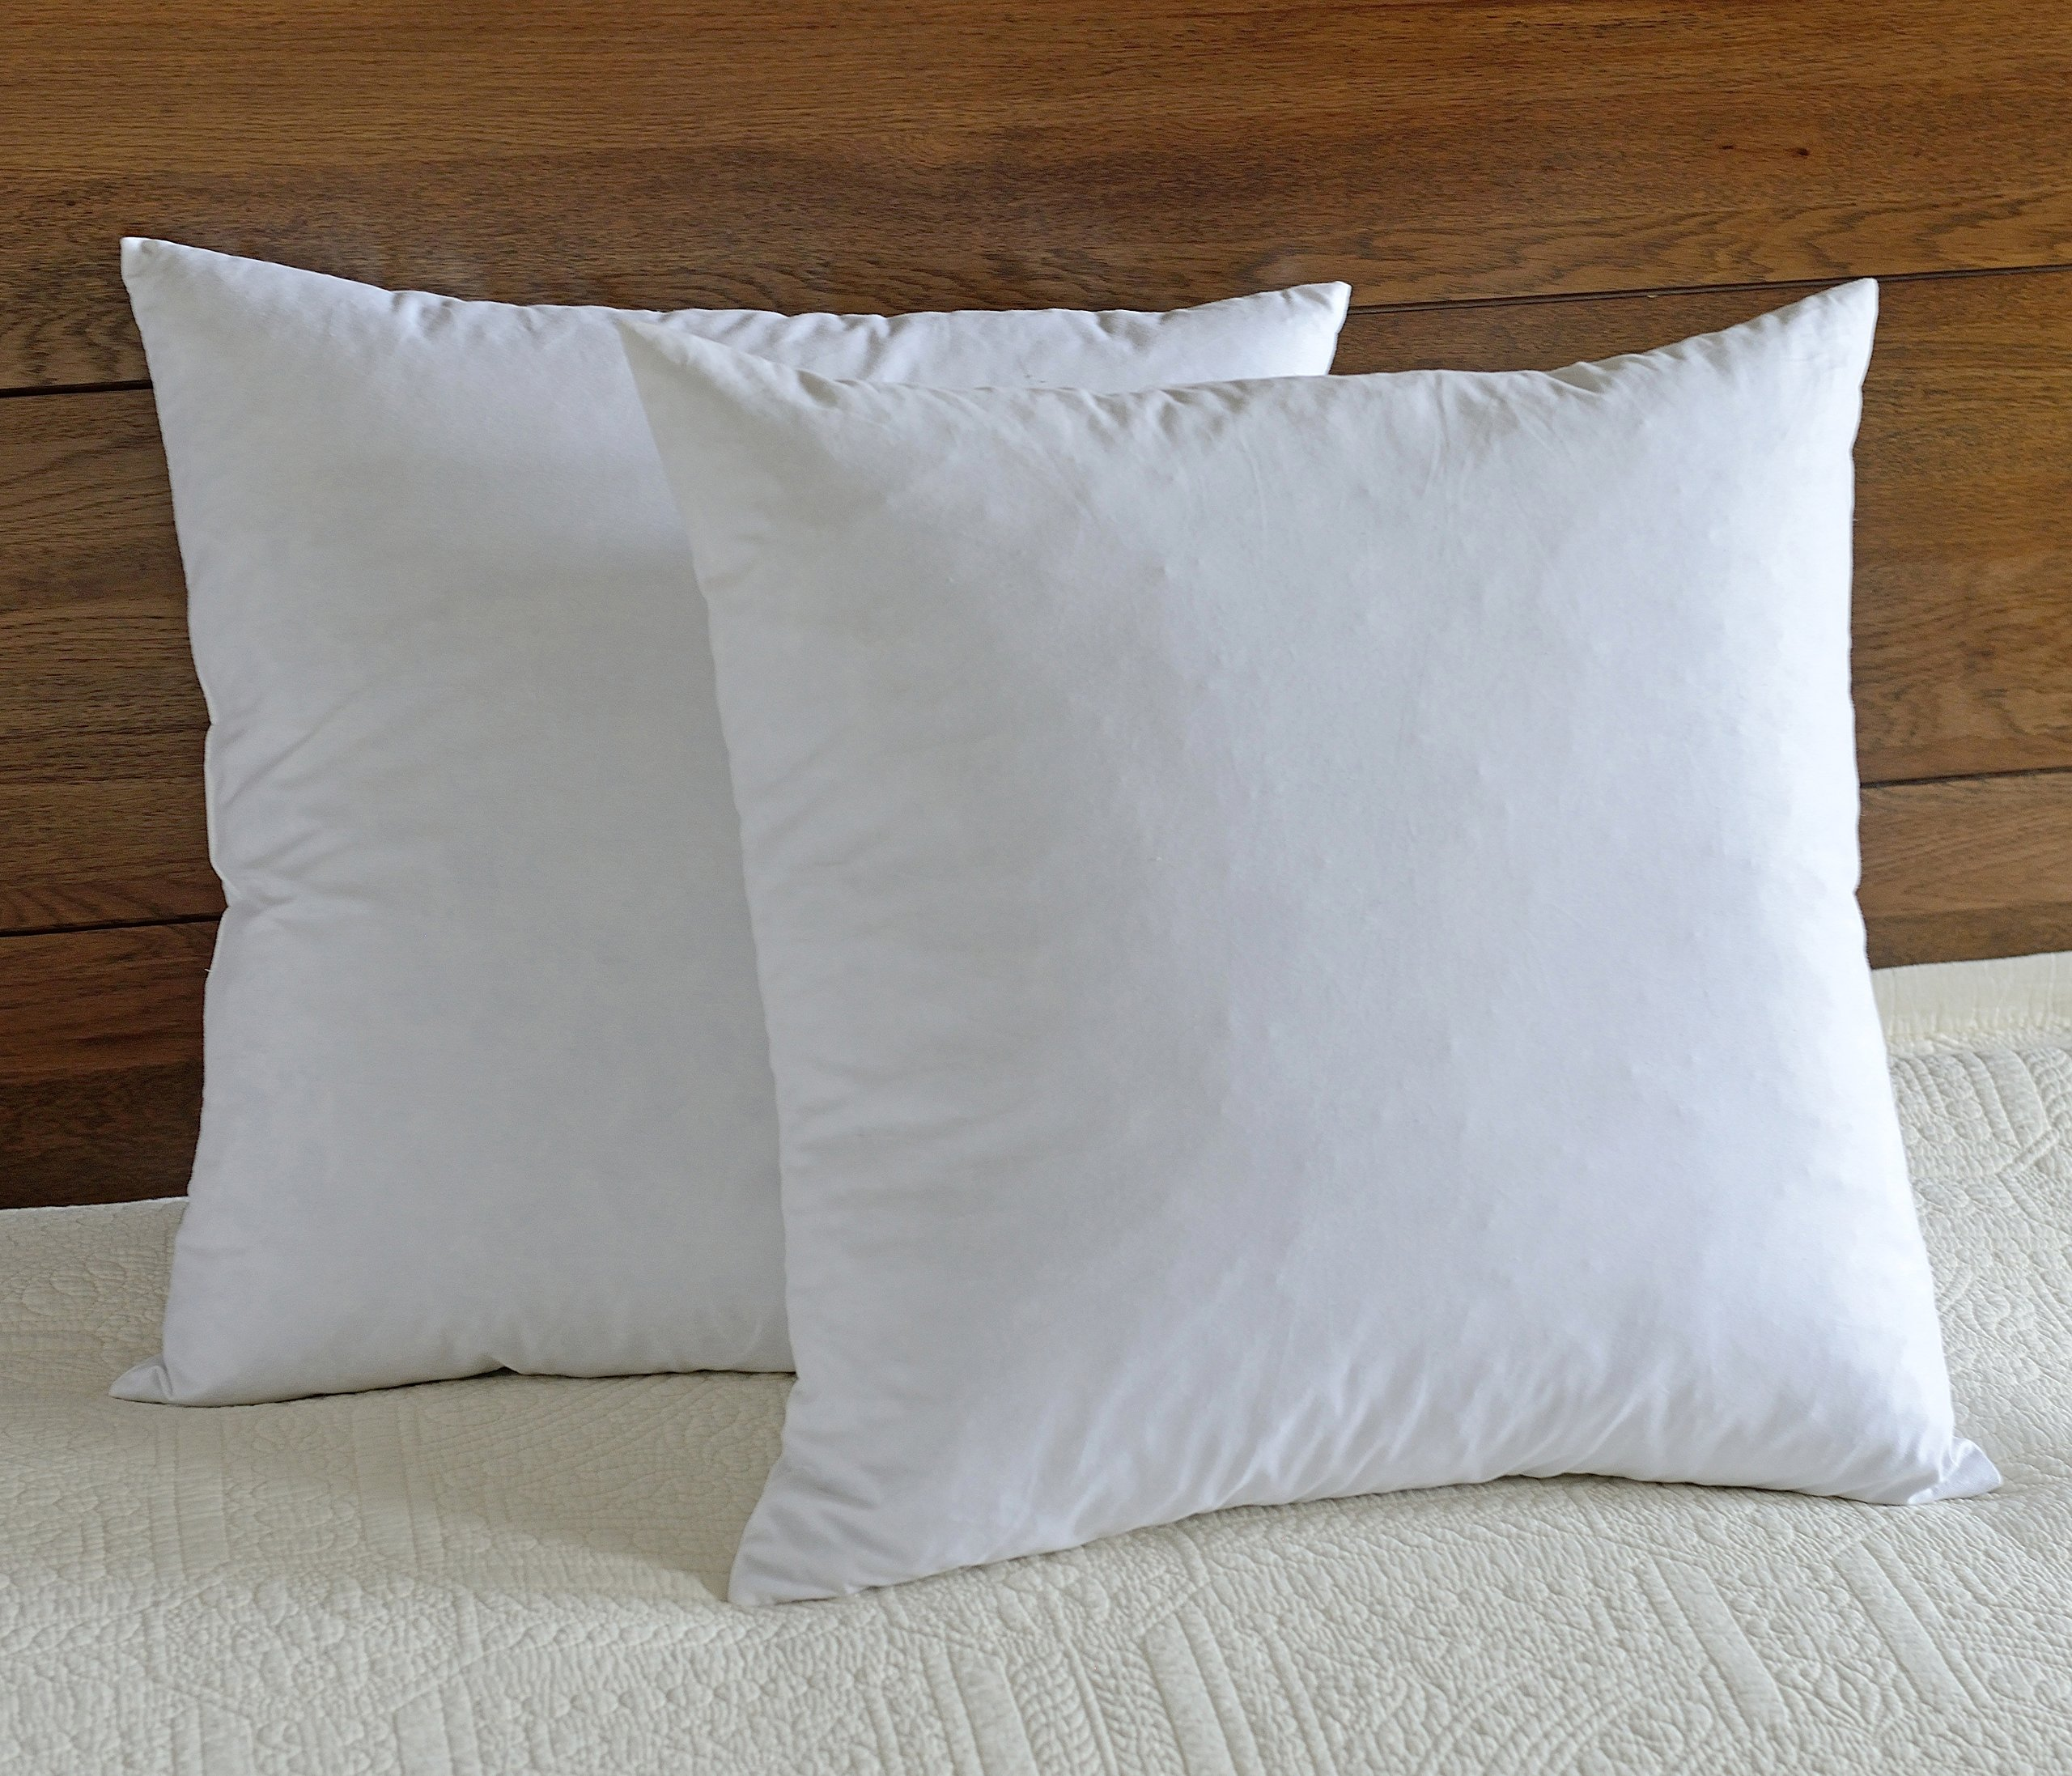 downluxe Feather Pillow Inserts (Set of 2) - 26x26 Square Euro Pillow with 100% Cotton Fabric